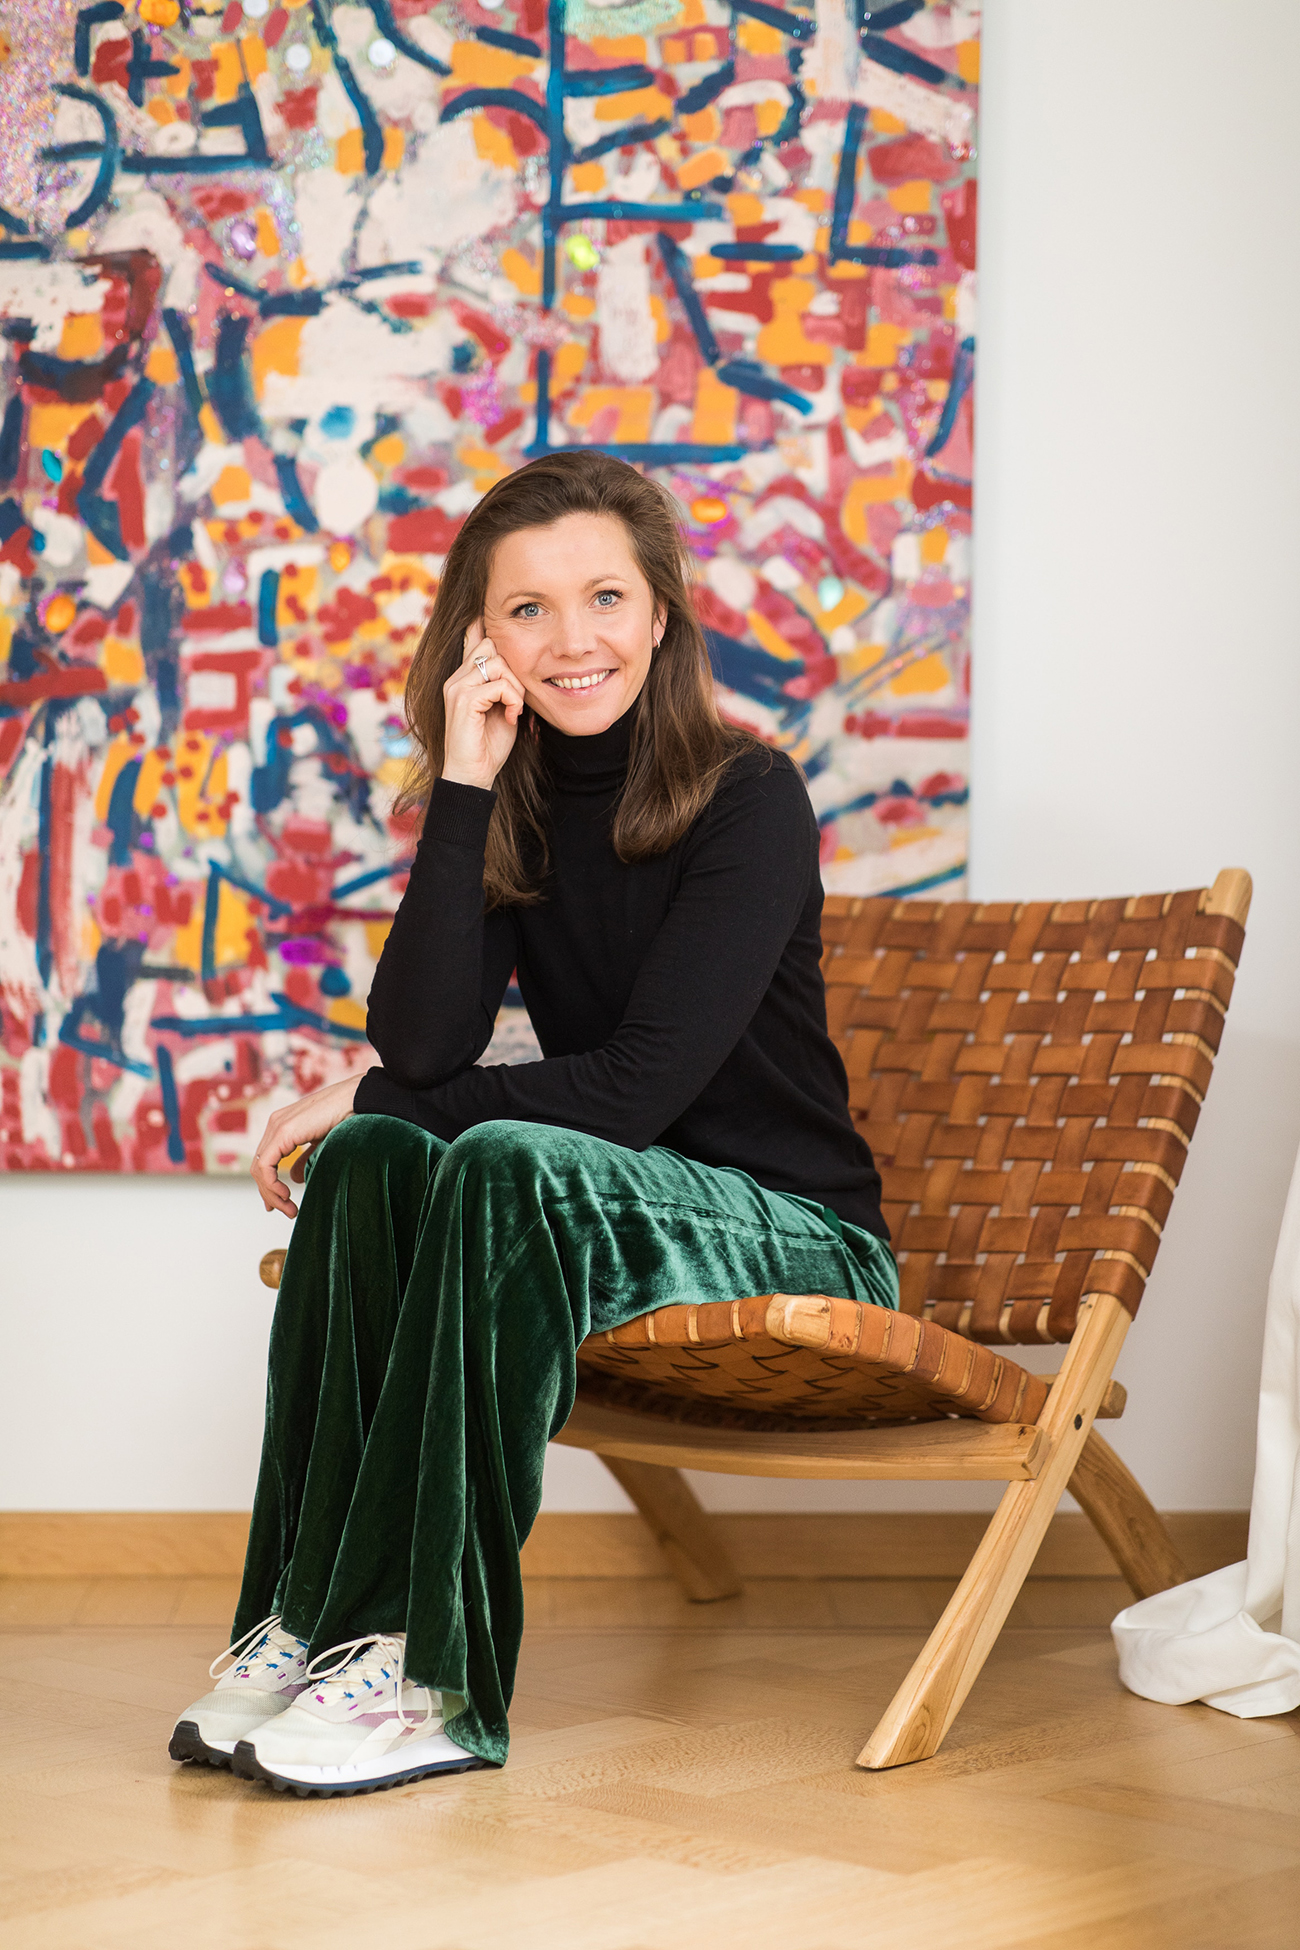 Art Advisor and Art Consultant Alexia Werrie offers services of private art interior collection consulting